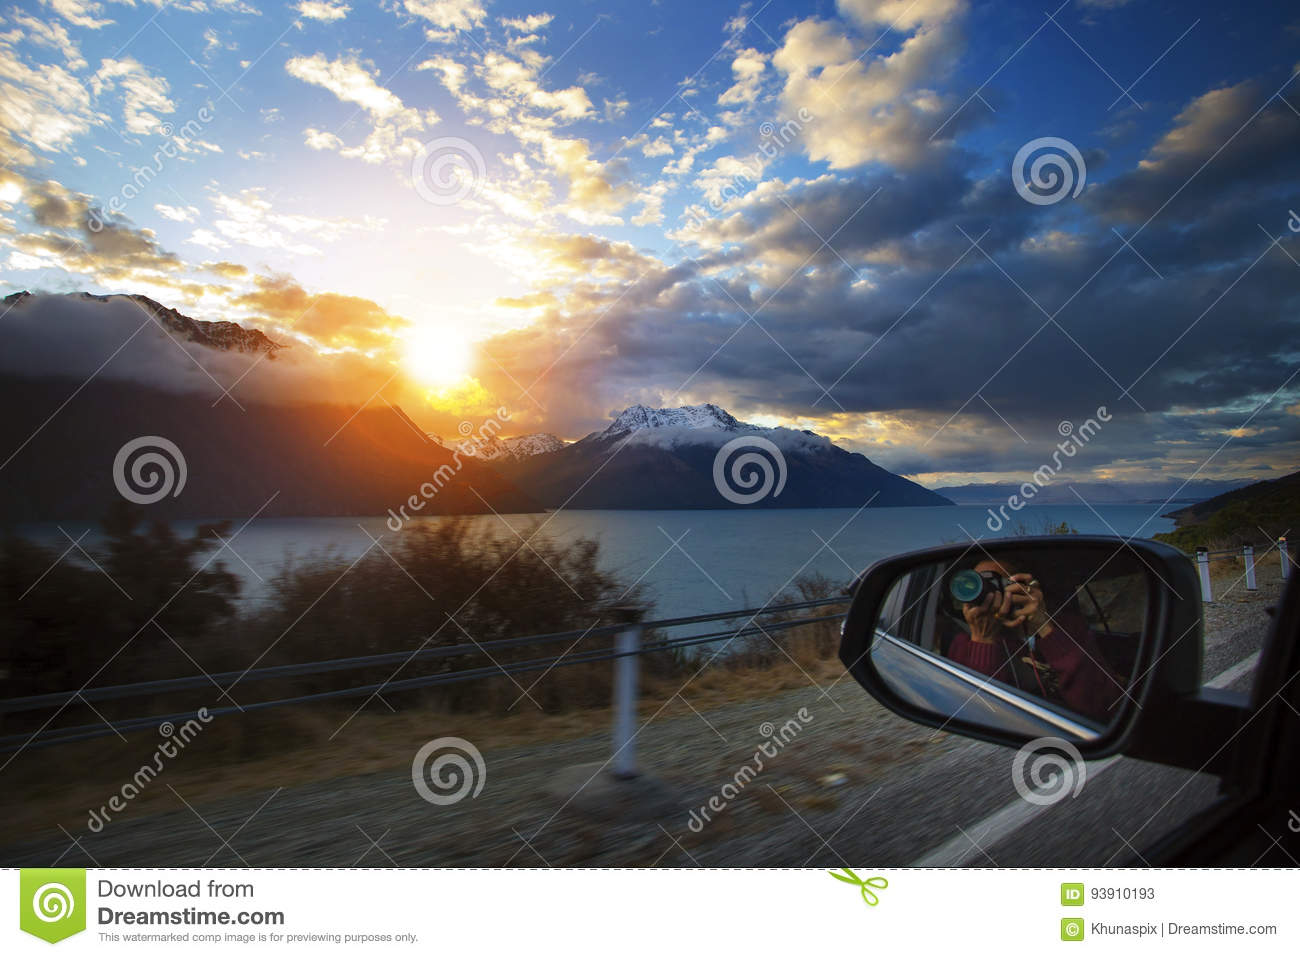 Traveling Man Taking Sunset Photography While Car Driving On Country Road Beside Lake Wakatipu South Island New Zealand Stock Image Image Of Detective Road 93910193